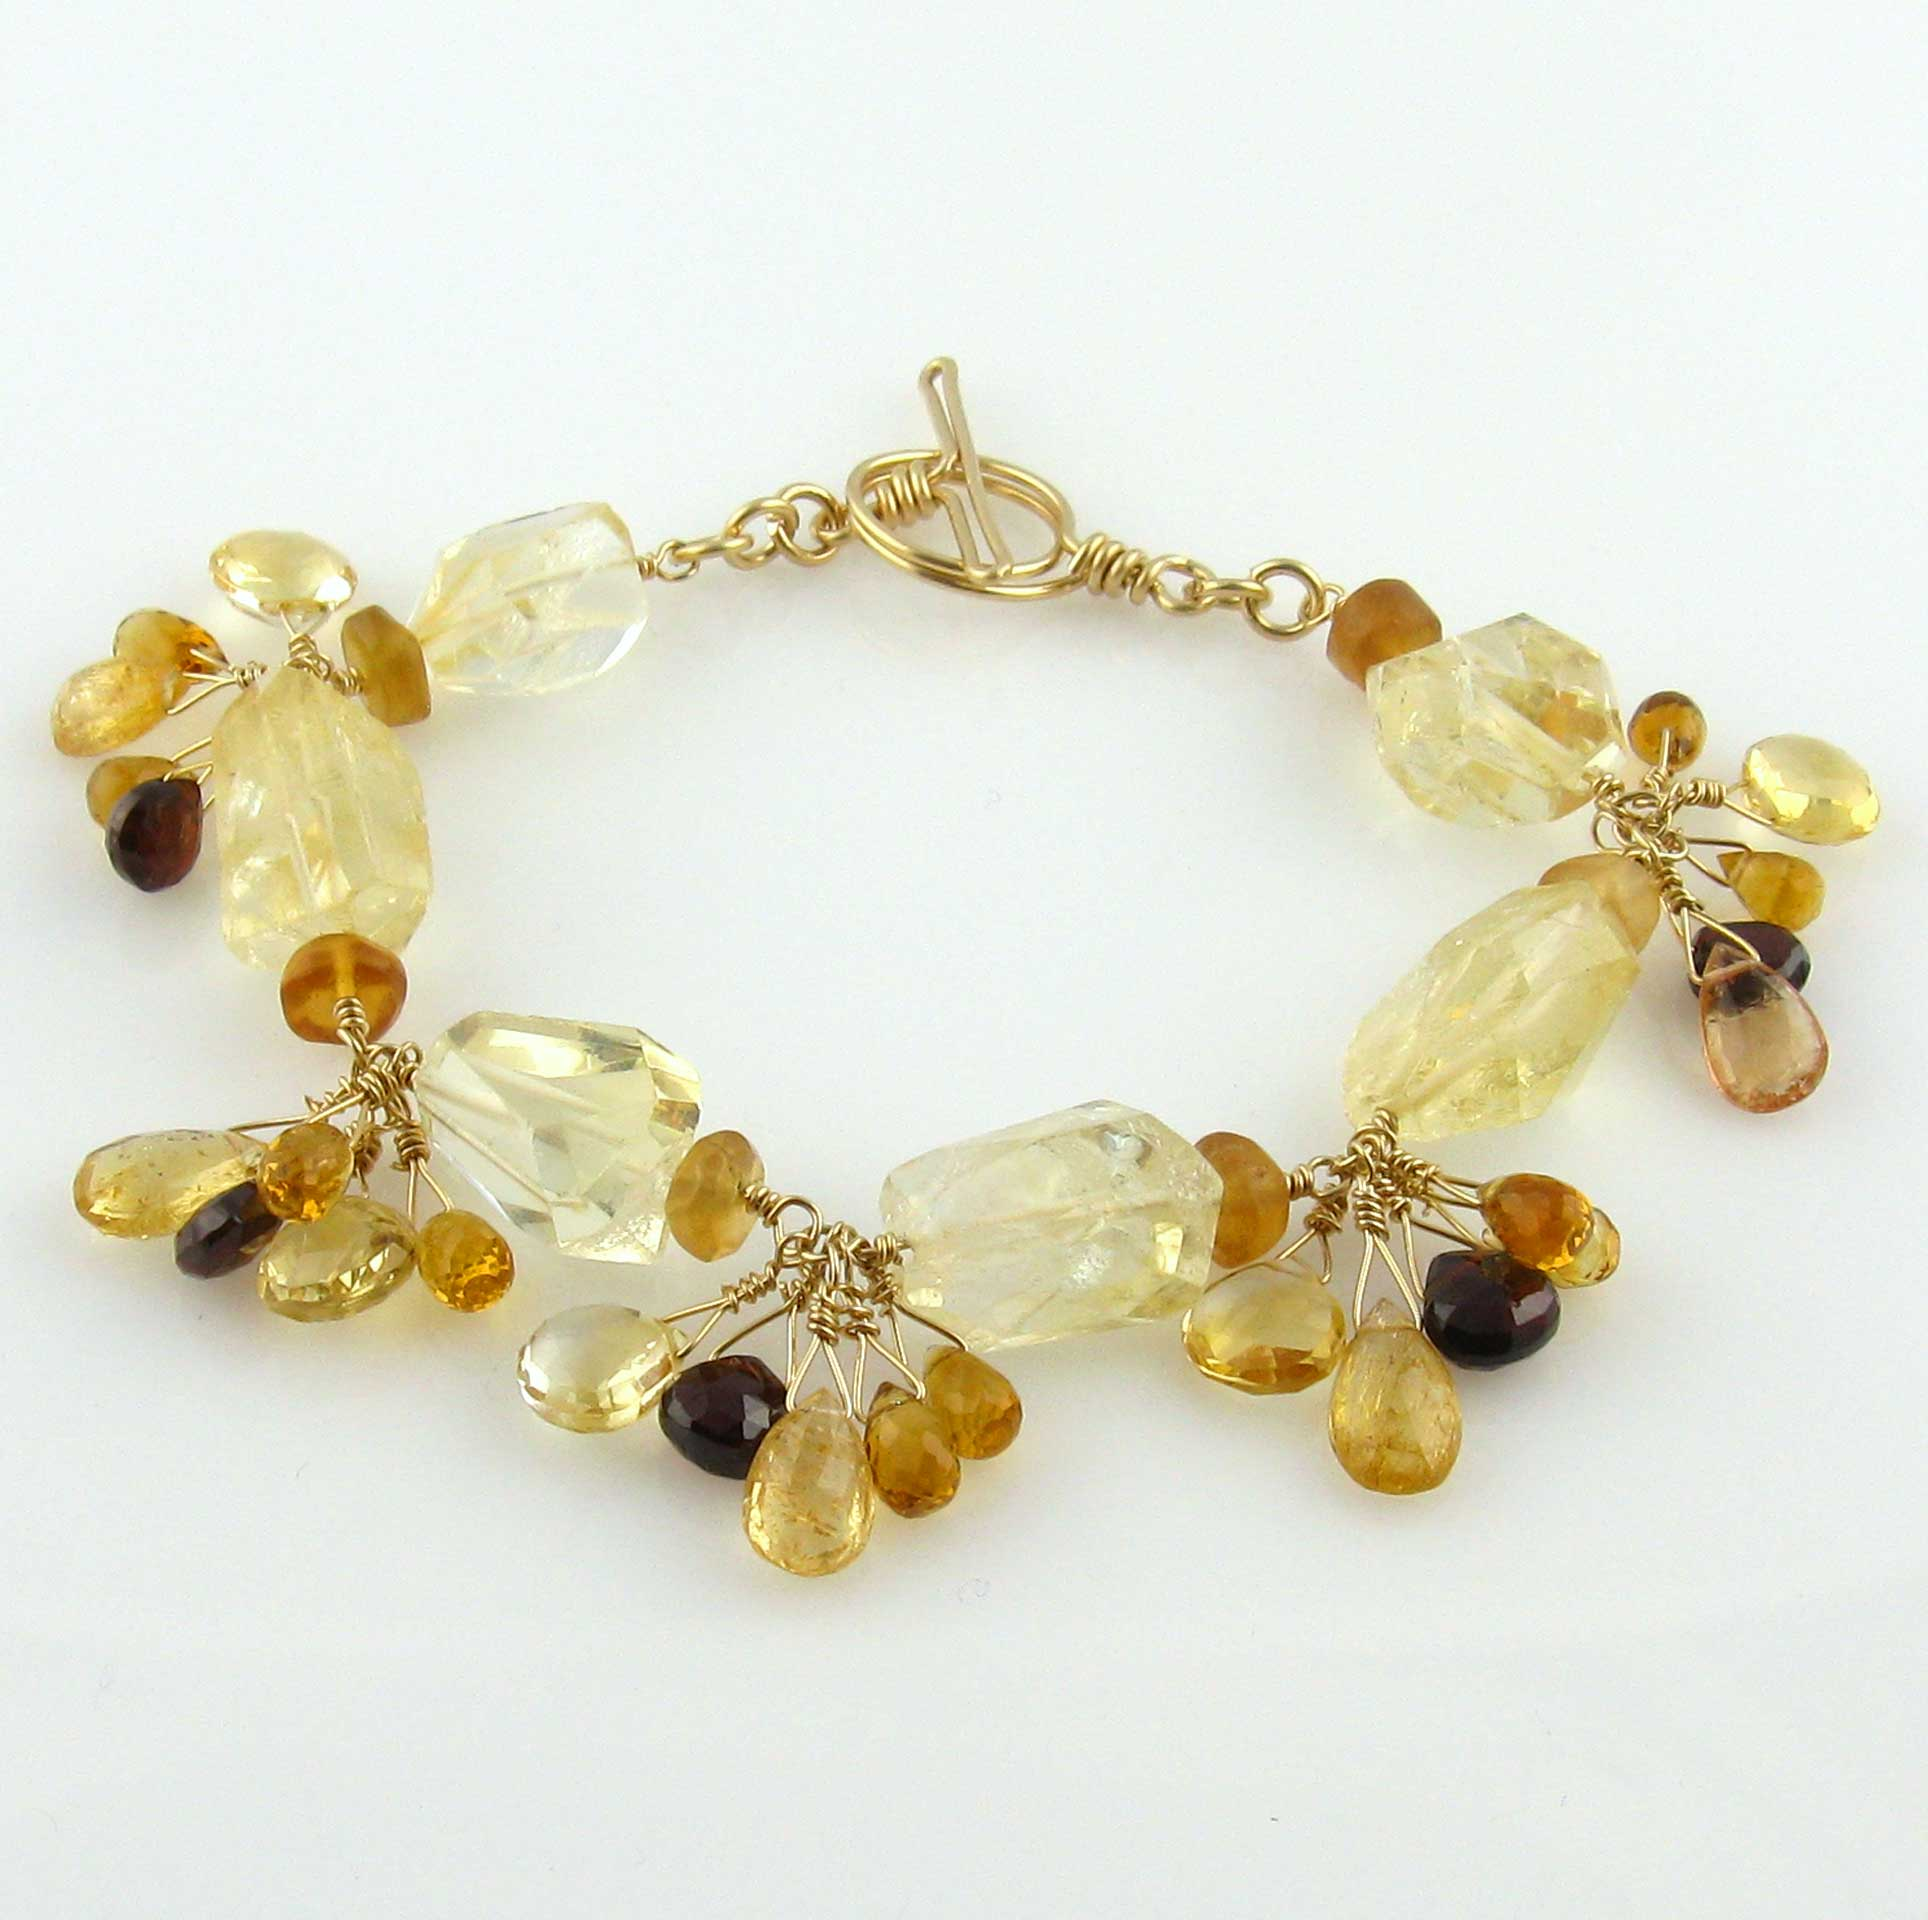 collen clare accessories a celebrate jewellery bracelet buy beautiful image citrine story woman